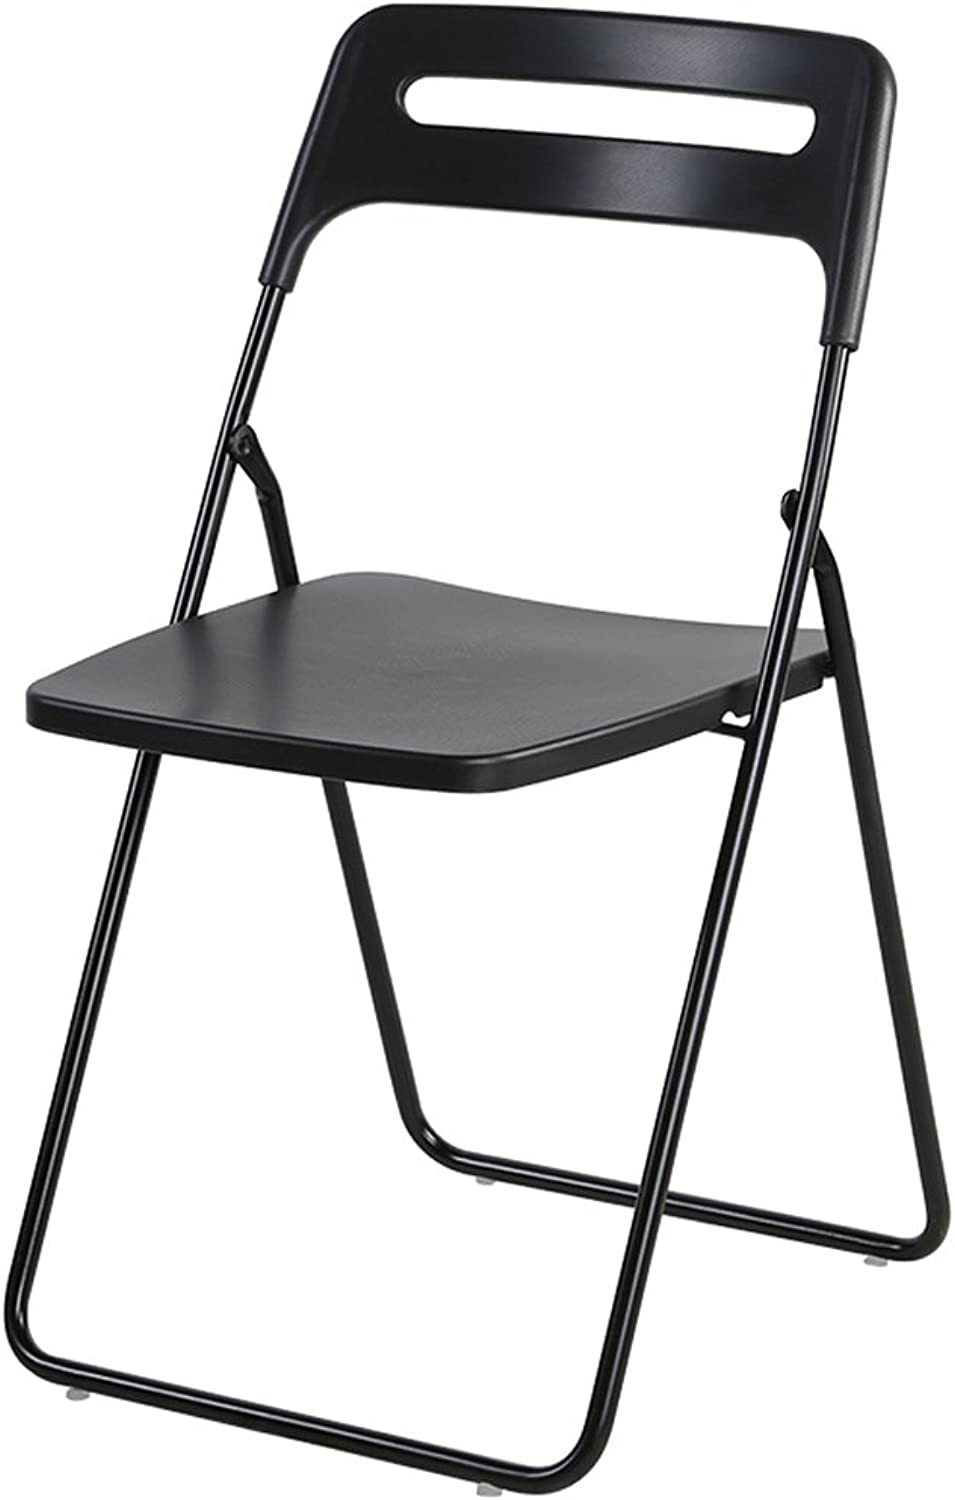 Folding Chair Portable Conference Chair Adult Dining Chair Student Plastic Stool Household Chair (color   Black)